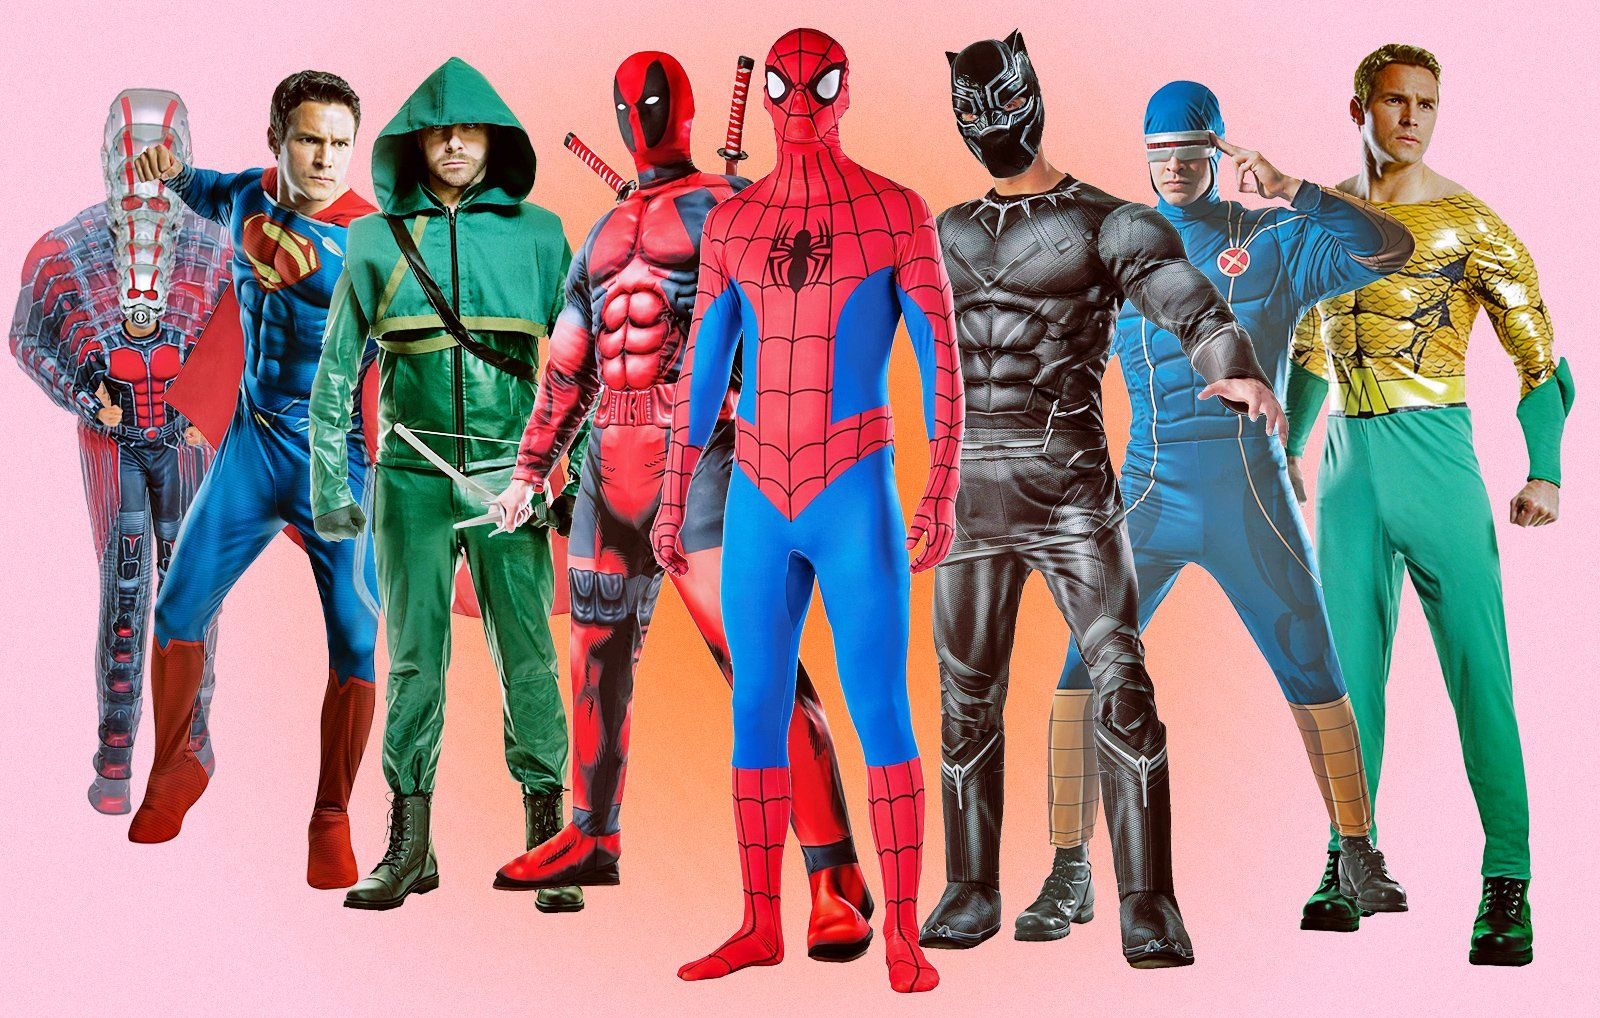 superhero halloween costumes  sc 1 st  Menu0027s Health & Halloween Costumes: 24 Superhero Costume Ideas | Menu0027s Health